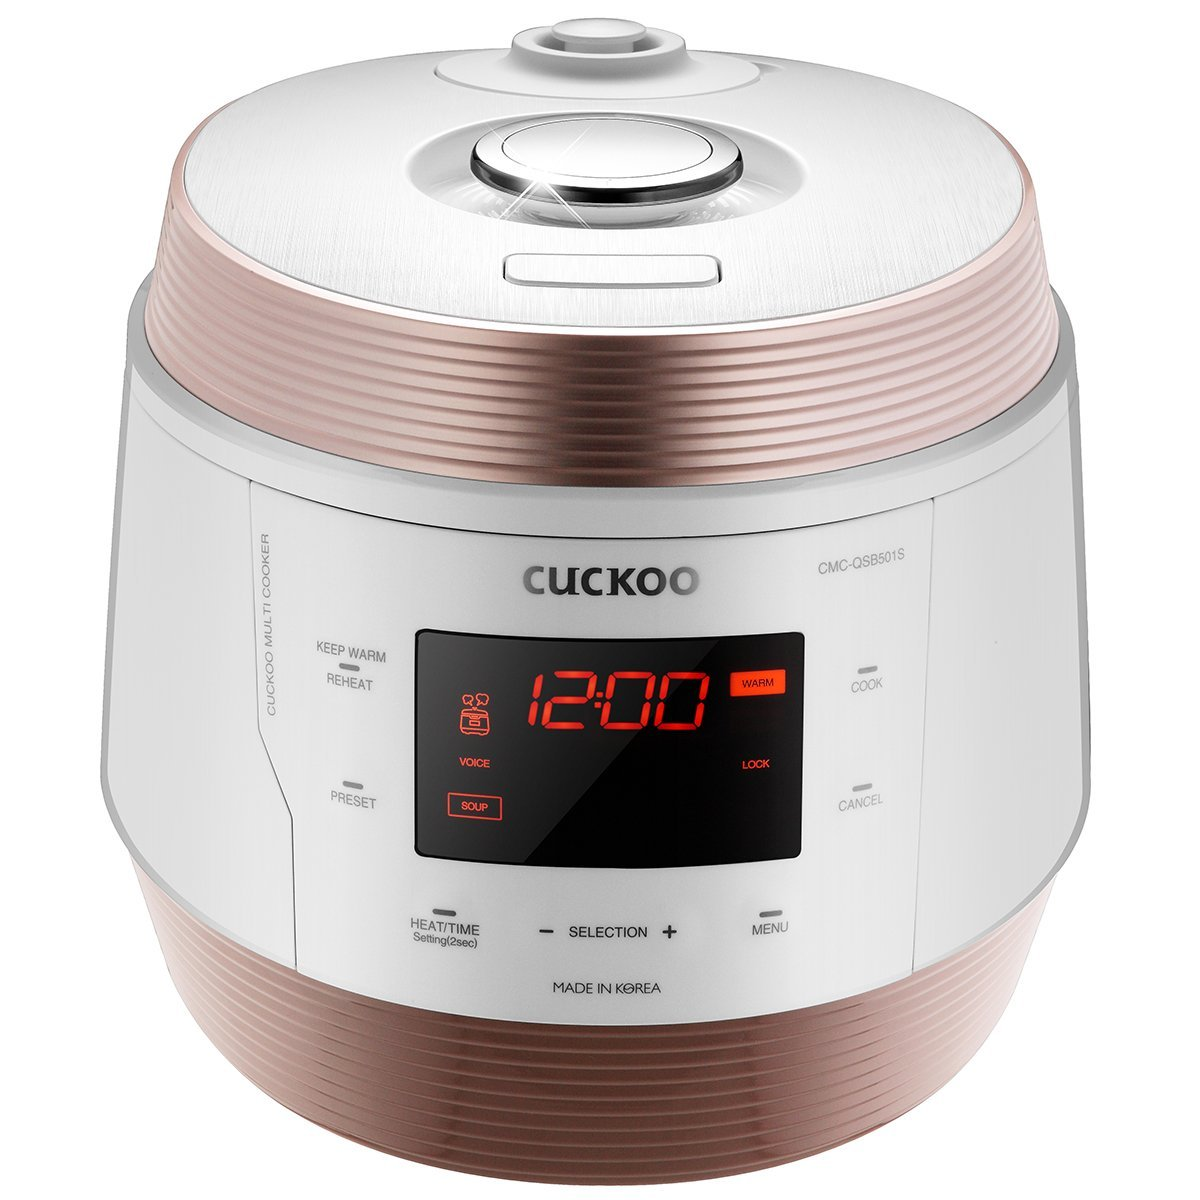 Cuckoo 8 in 1 Multi Pressure cooker (Pressure Cooker, Slow Cooker, Rice Cooker, Browning Fry, Steamer, Warmer, Yogurt Maker, Soup Maker) Stainless Steel, Made in Korea, White, CMC-QSB501S